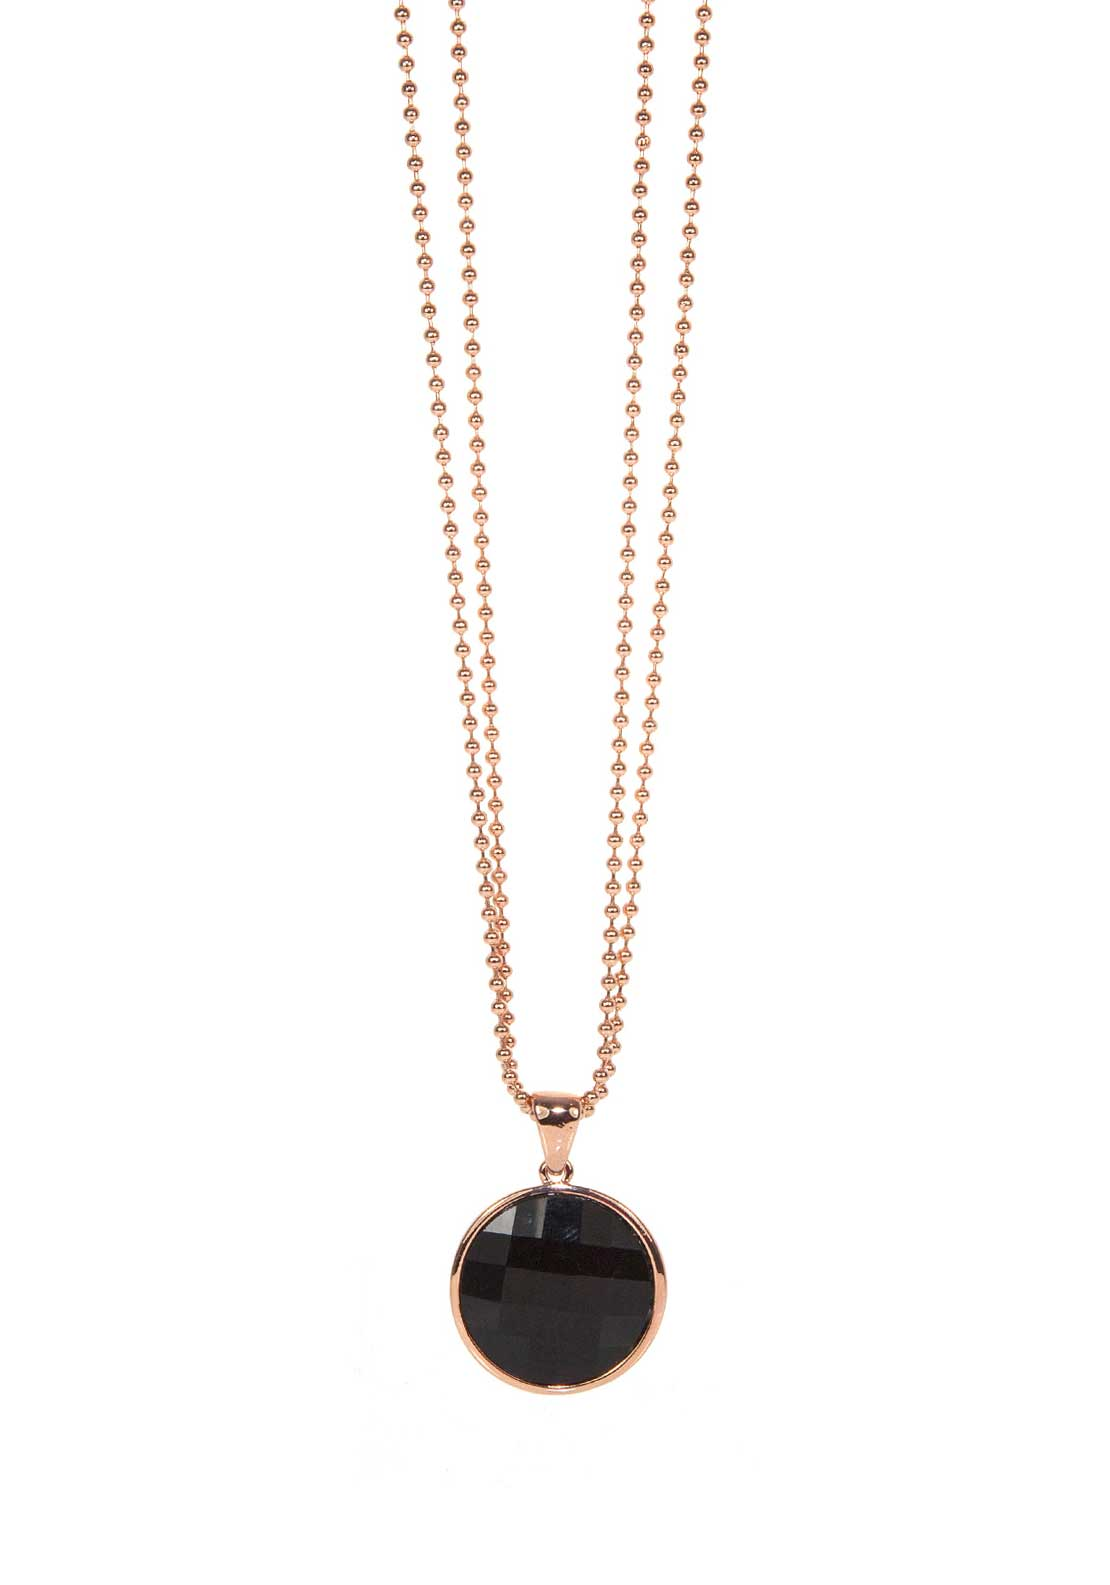 Absolute Jewellery Double Ball Chain Necklace with Black Pendant, Rose Gold